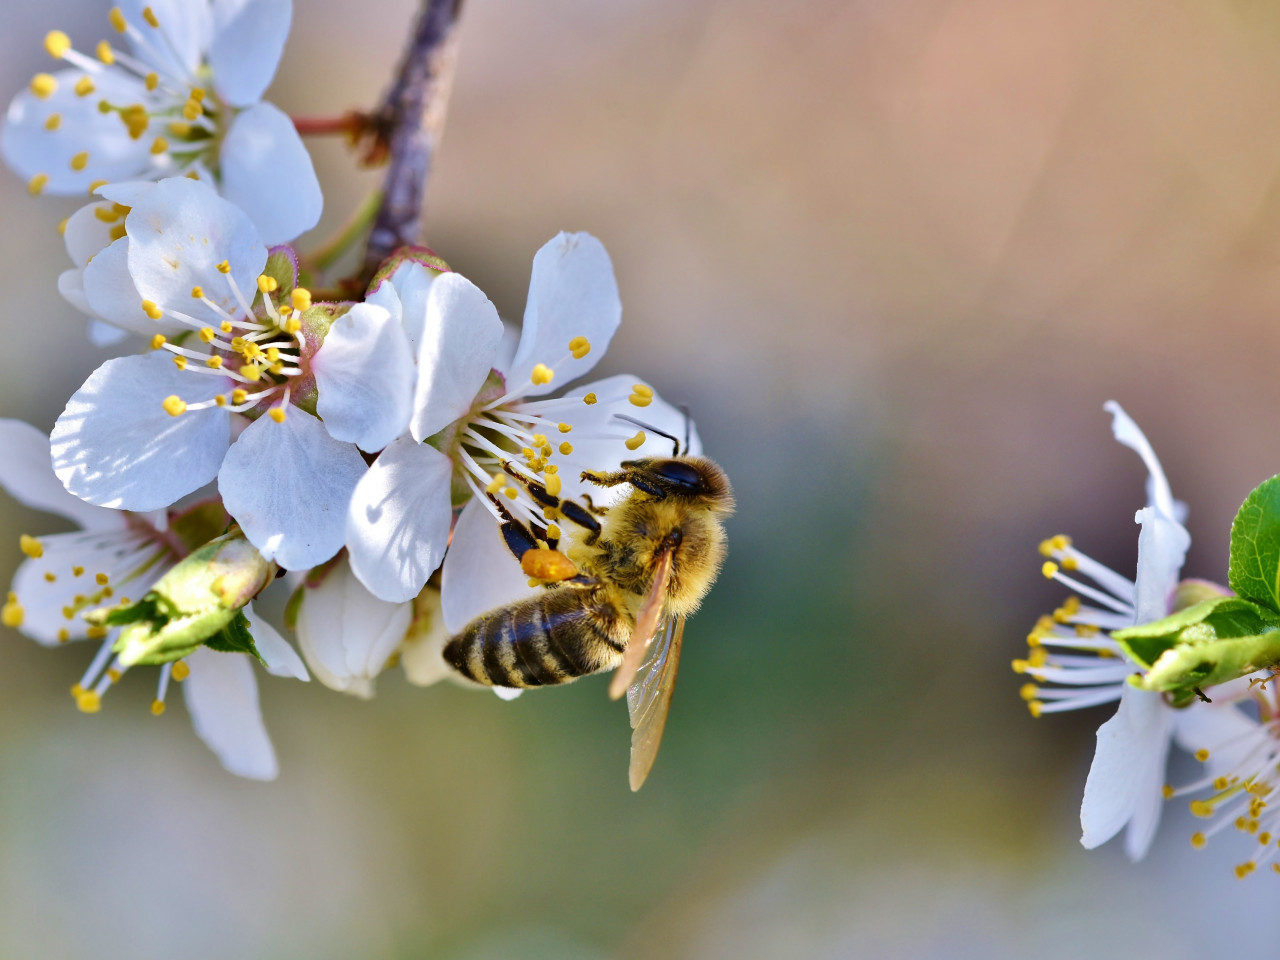 Spring, bee, blossoms, flower wallpaper 1280x960